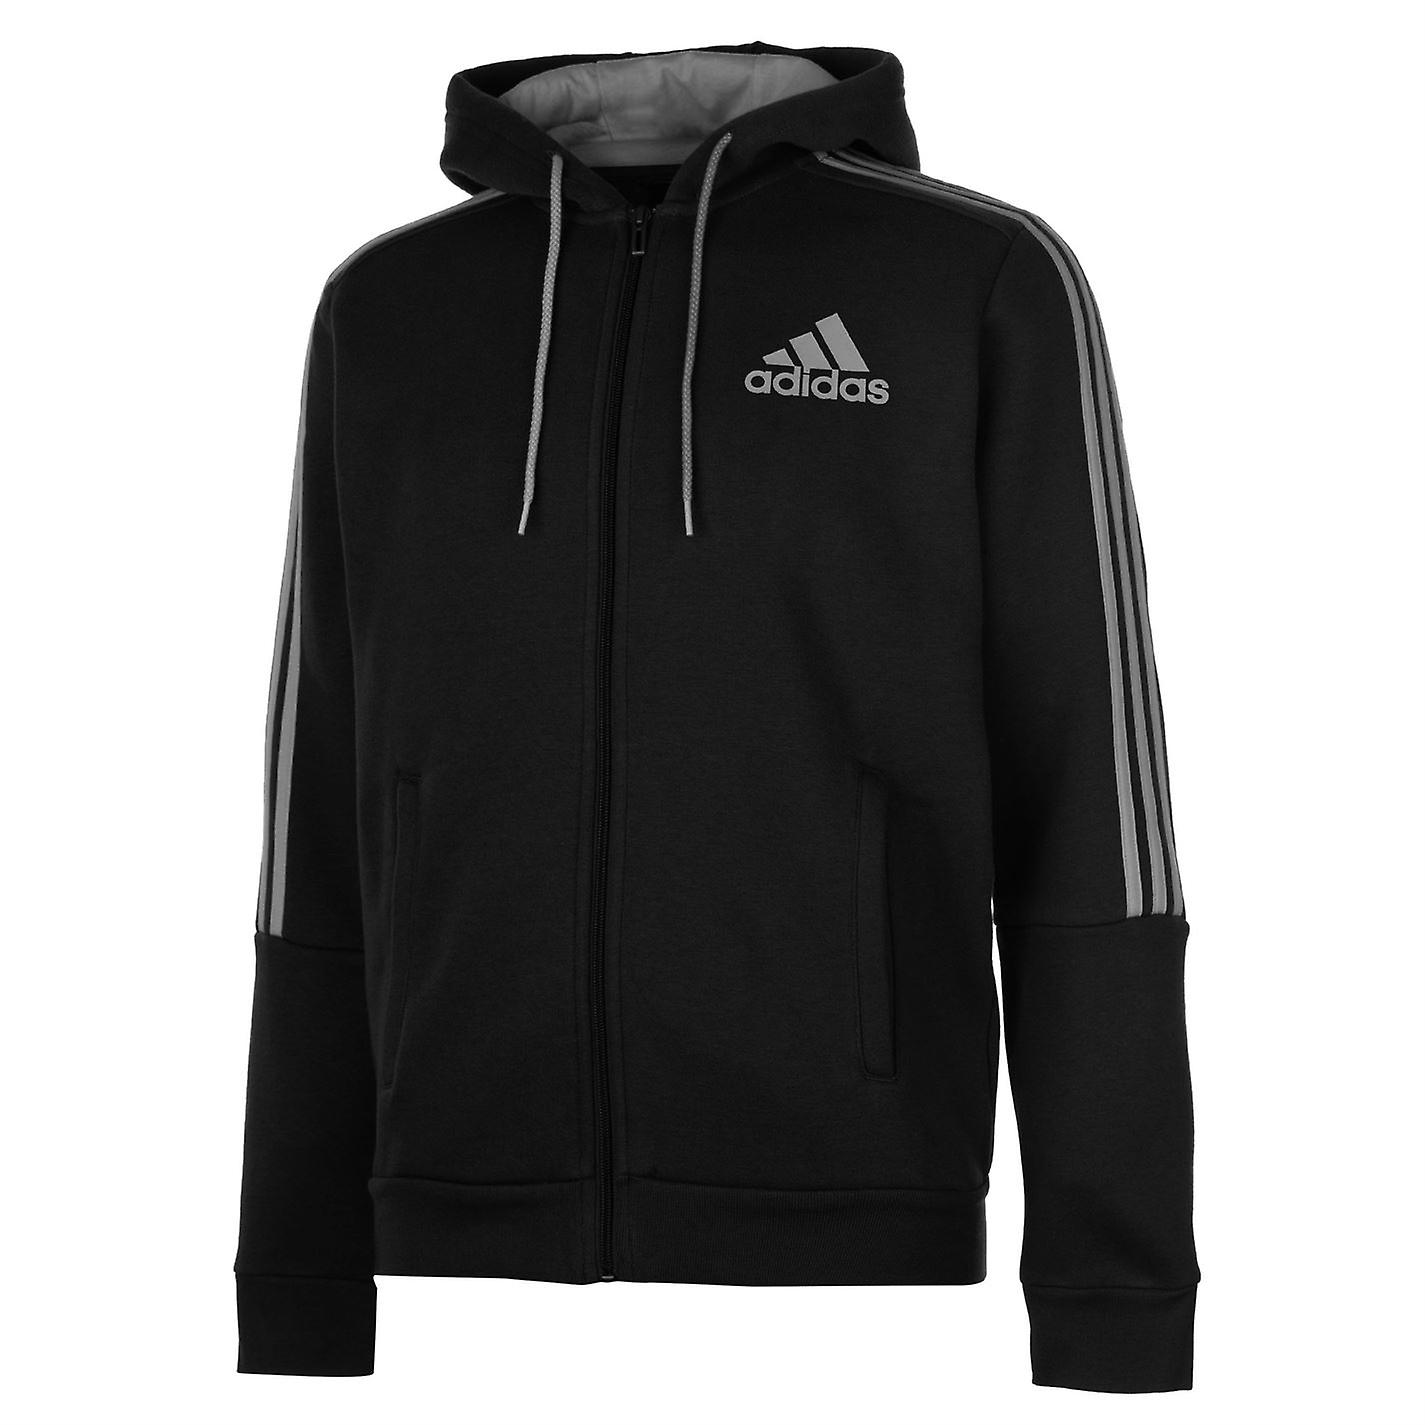 adidas Mens 3 Stripes Hooded Track Jacket Top Full Zip Front